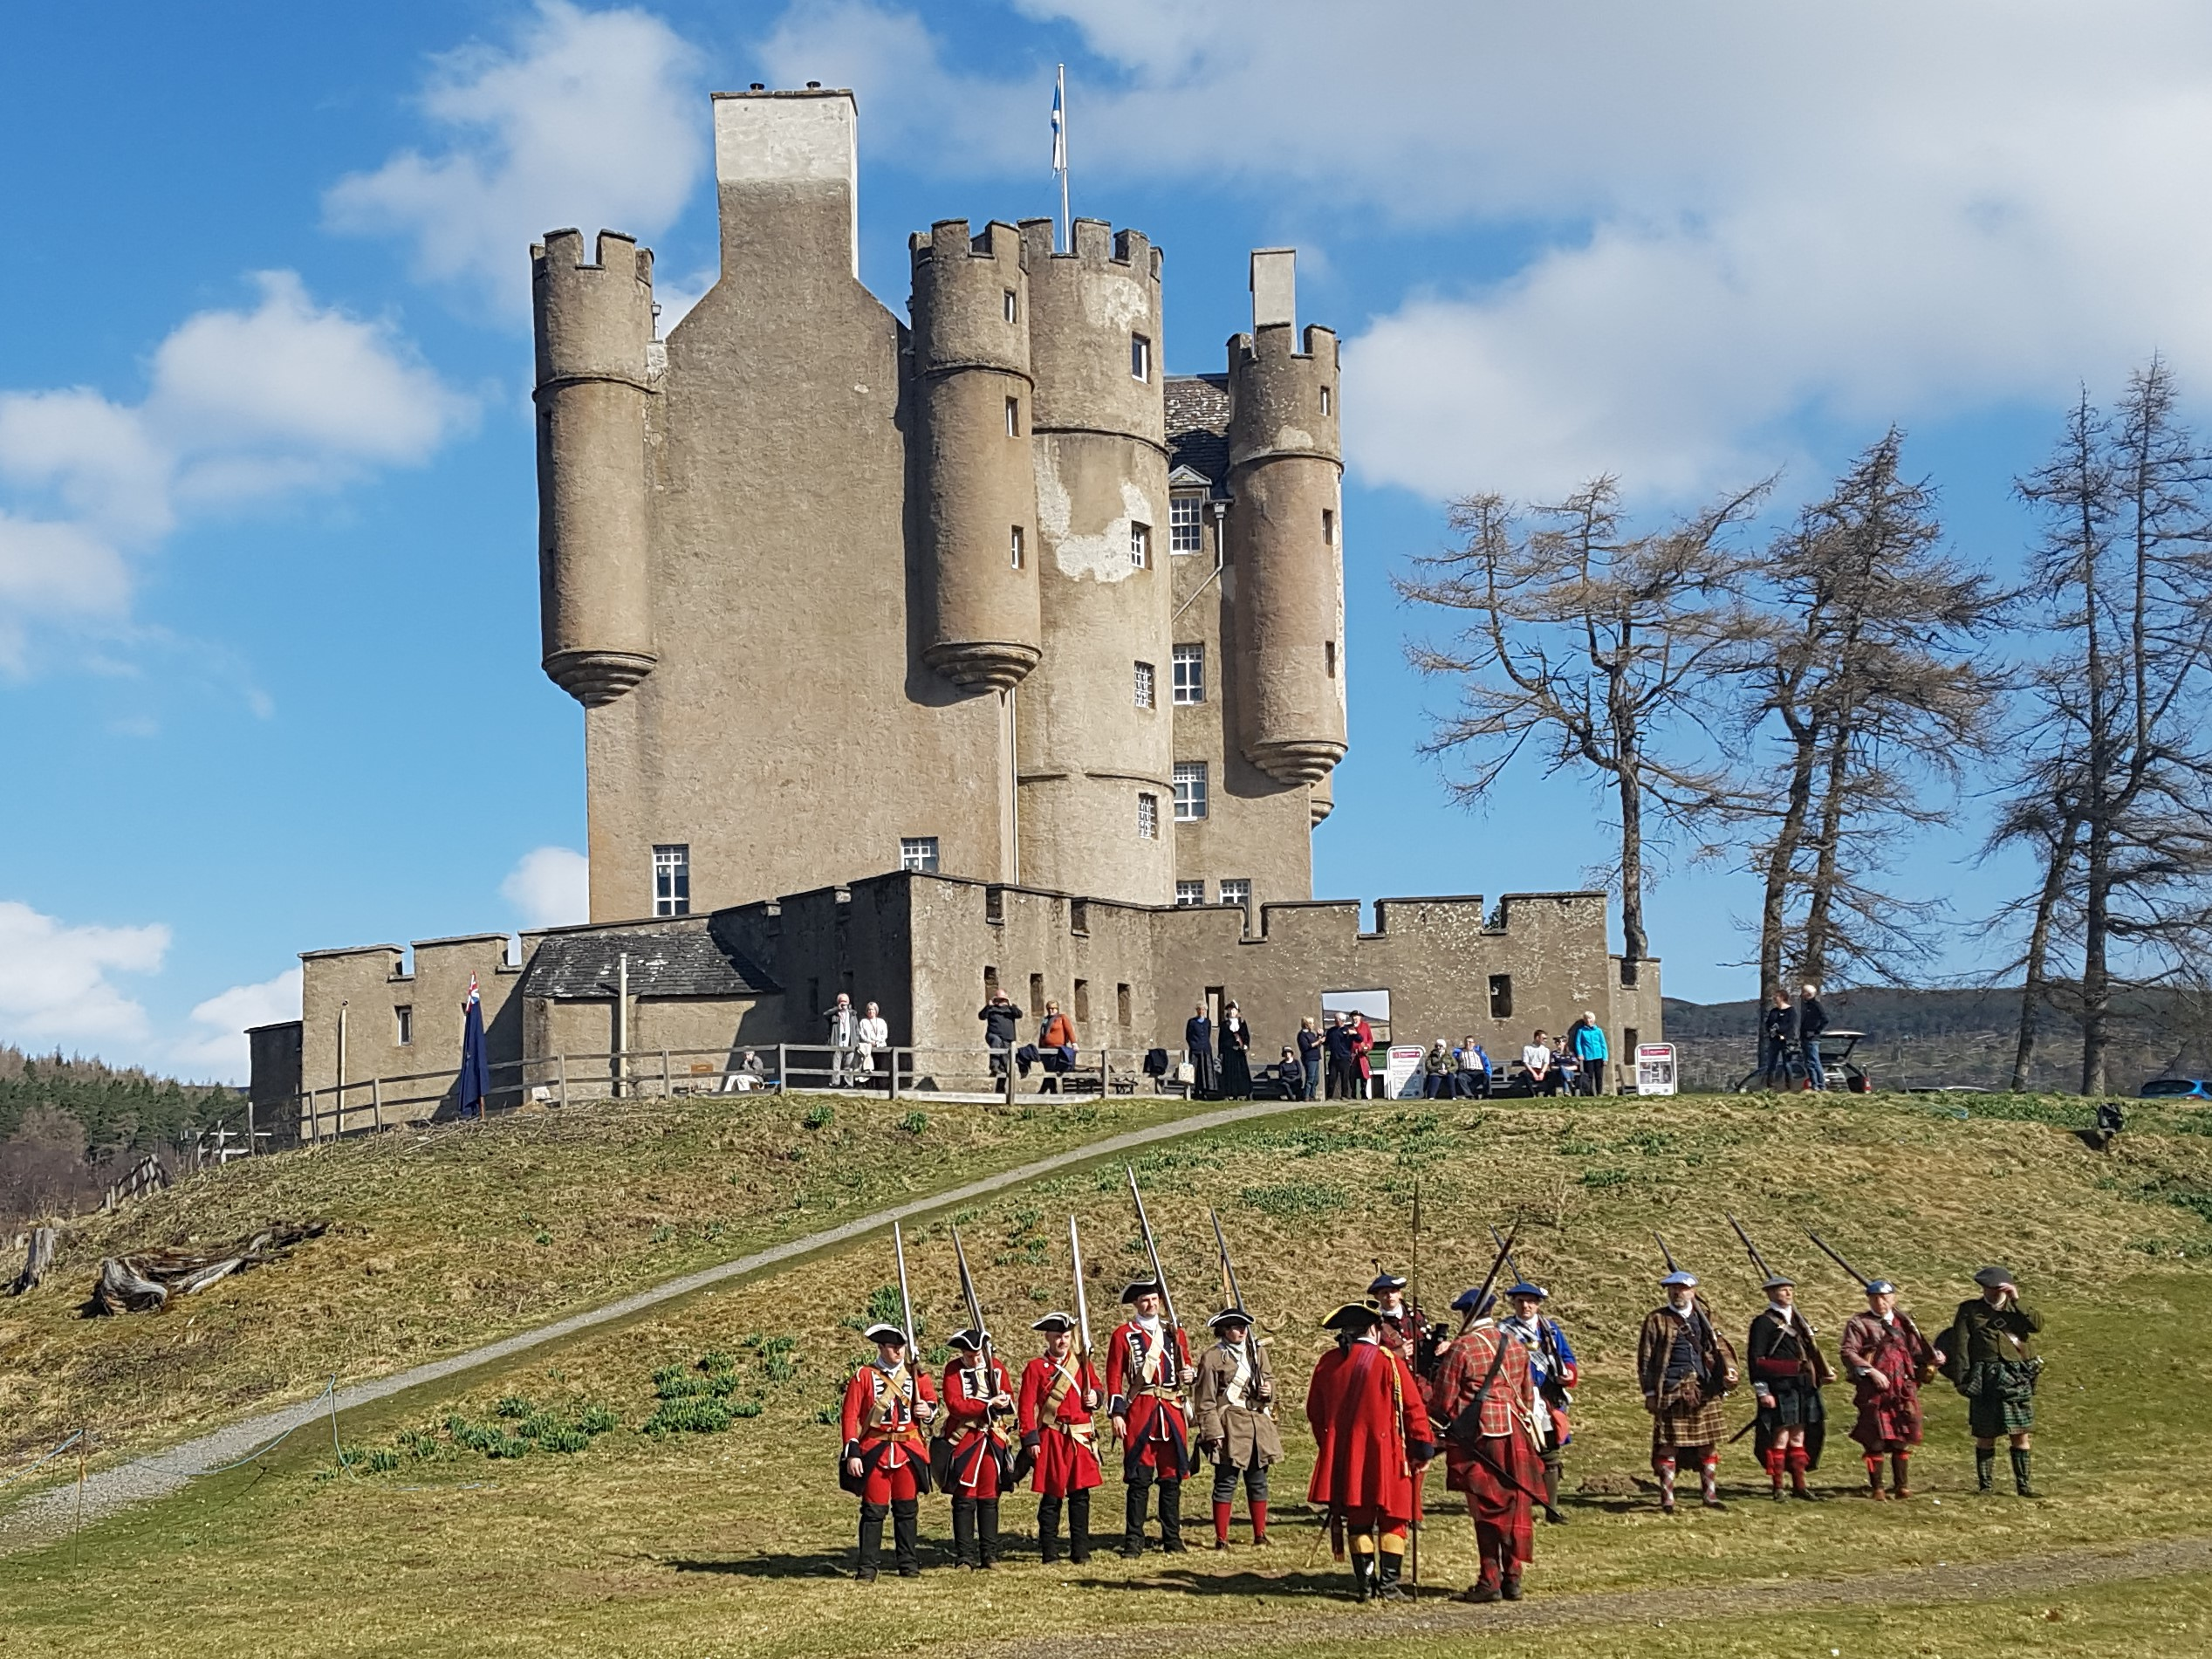 A re-enactment at the castle.